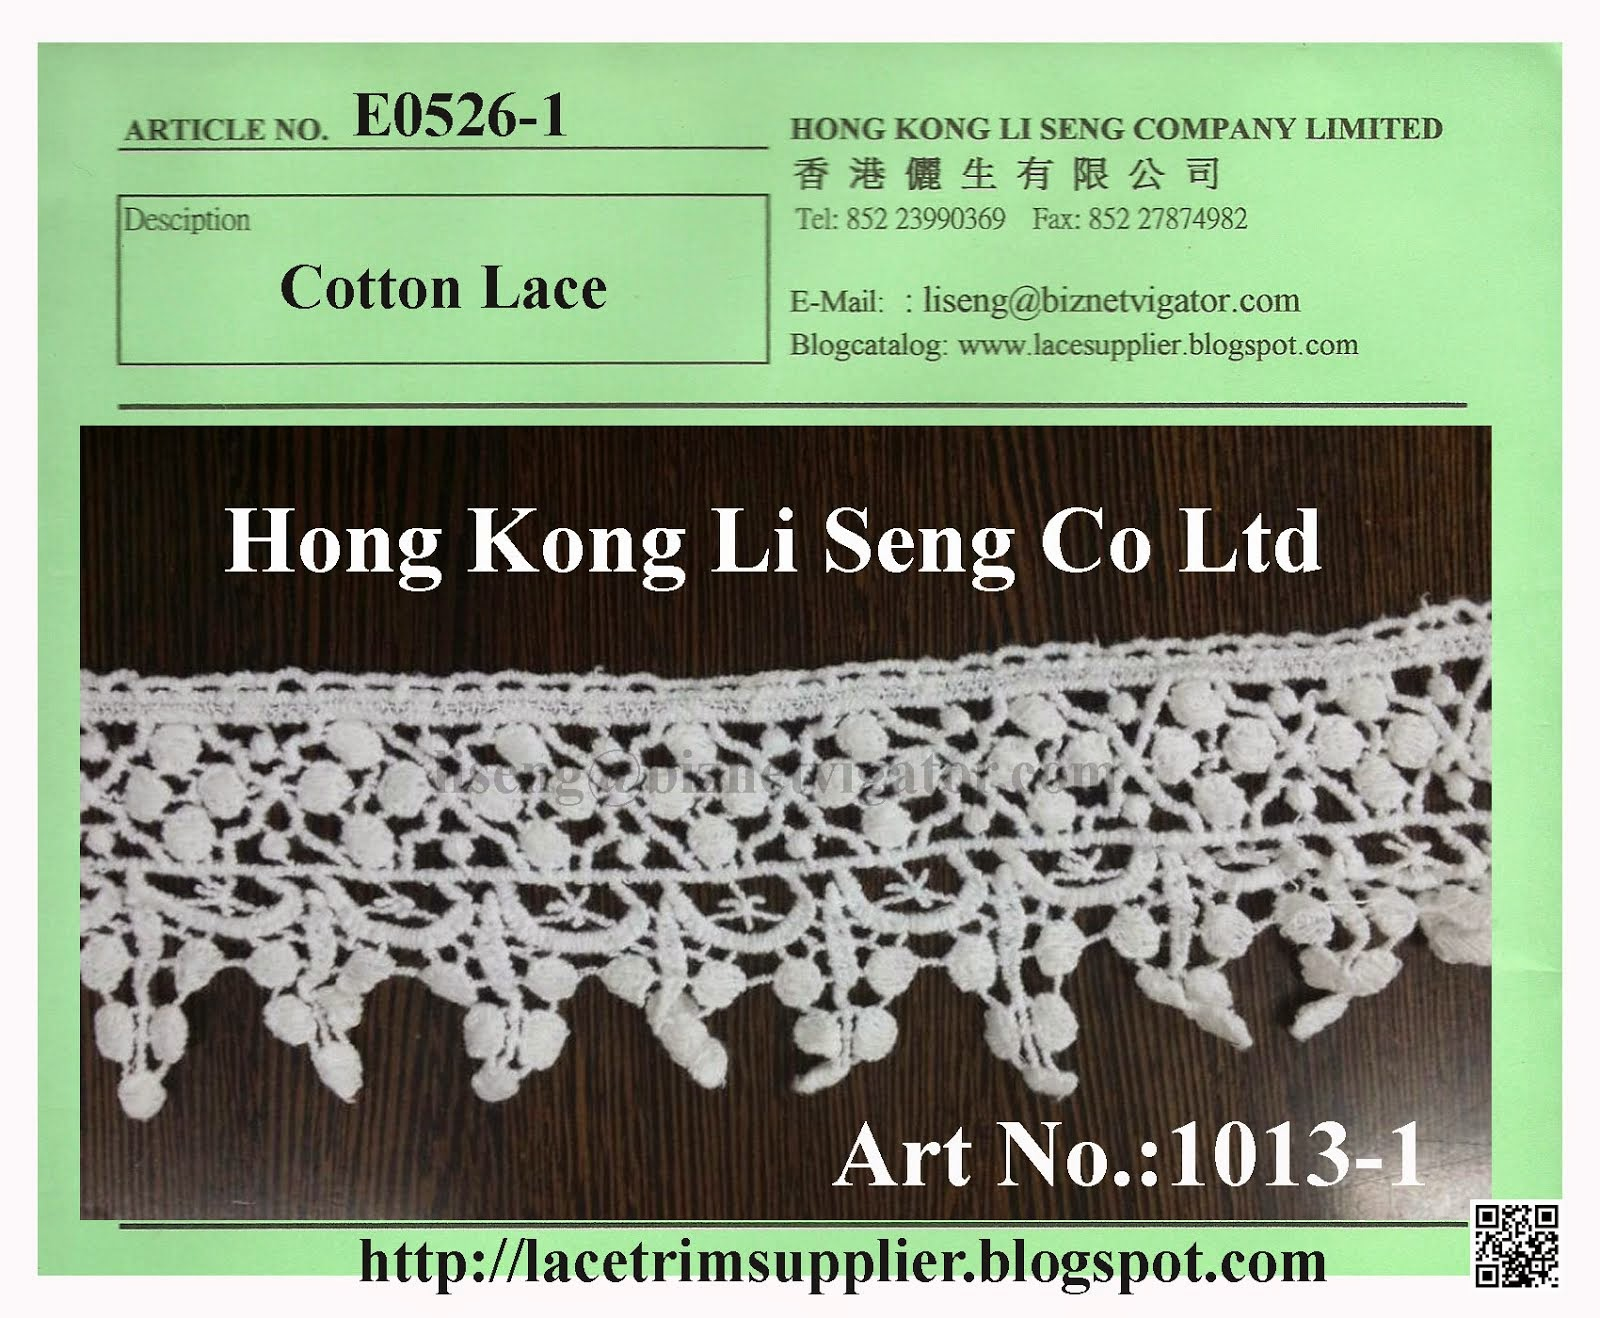 Embroidered Cotton Lace Trimming Manufacturer, Wholesale and Supplier - Hong Kong Li Seng Co Ltd